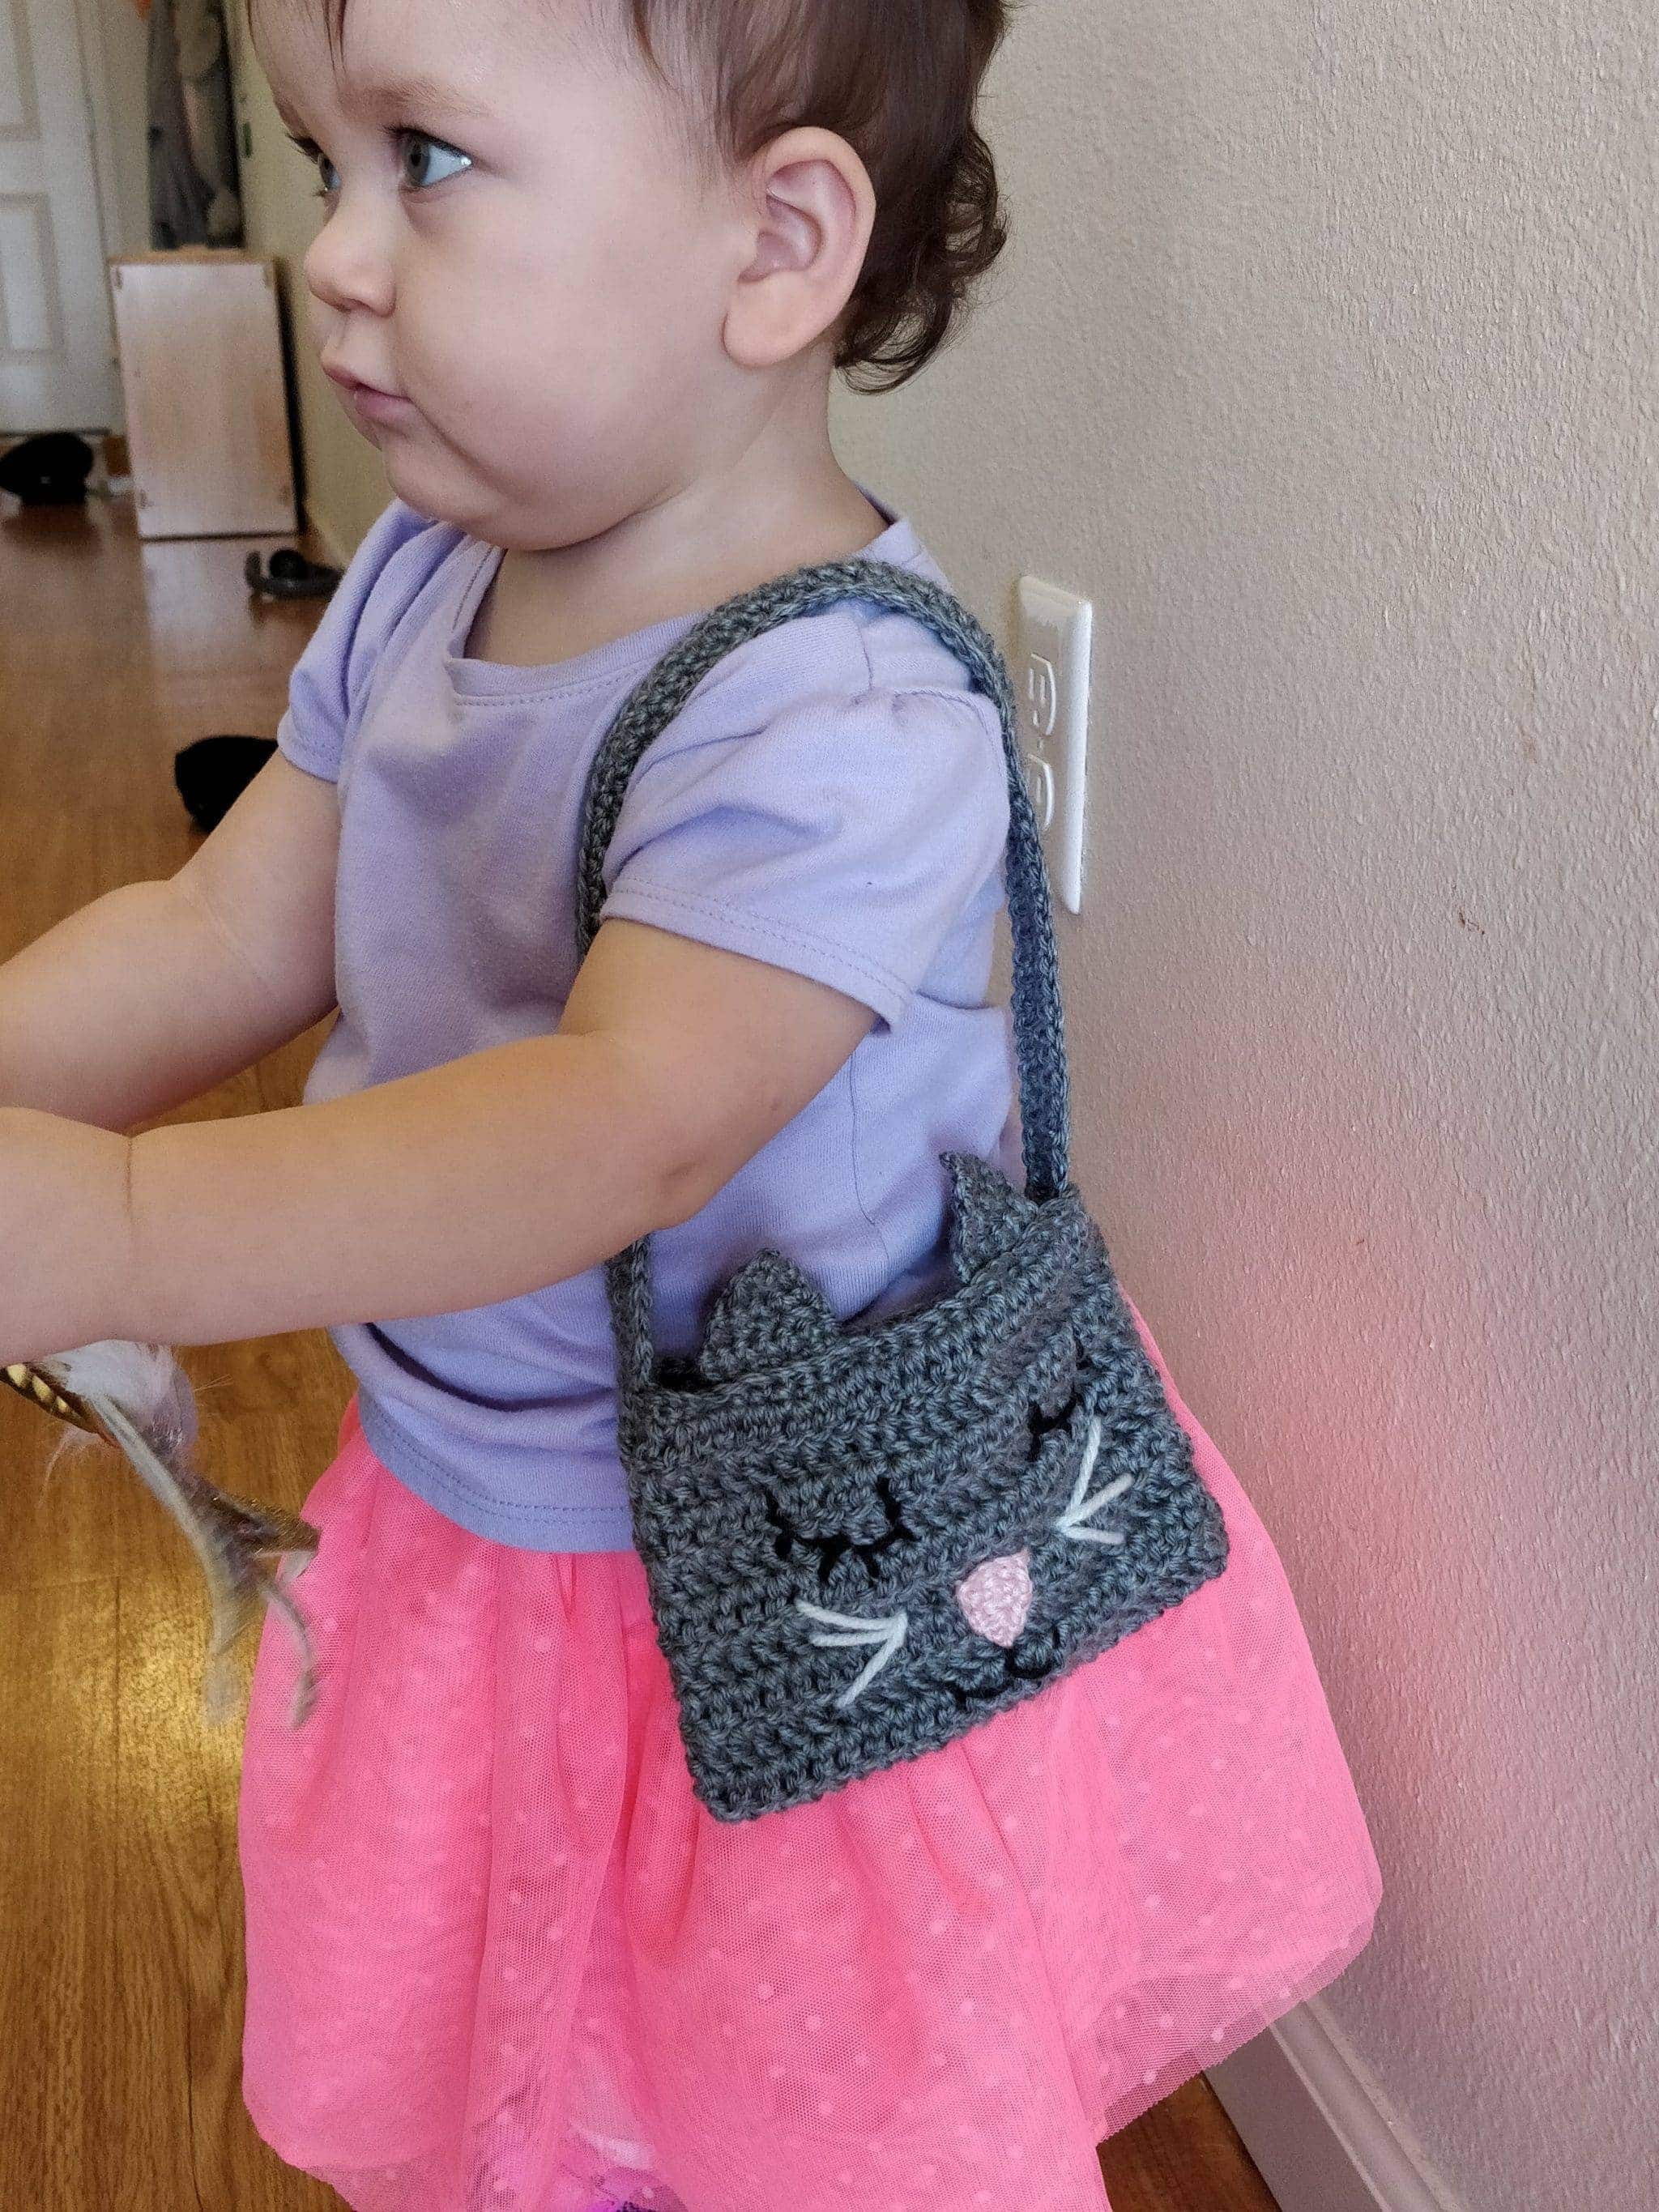 Little girl wearing crochet cat purse on her shoulder while indoors at a house